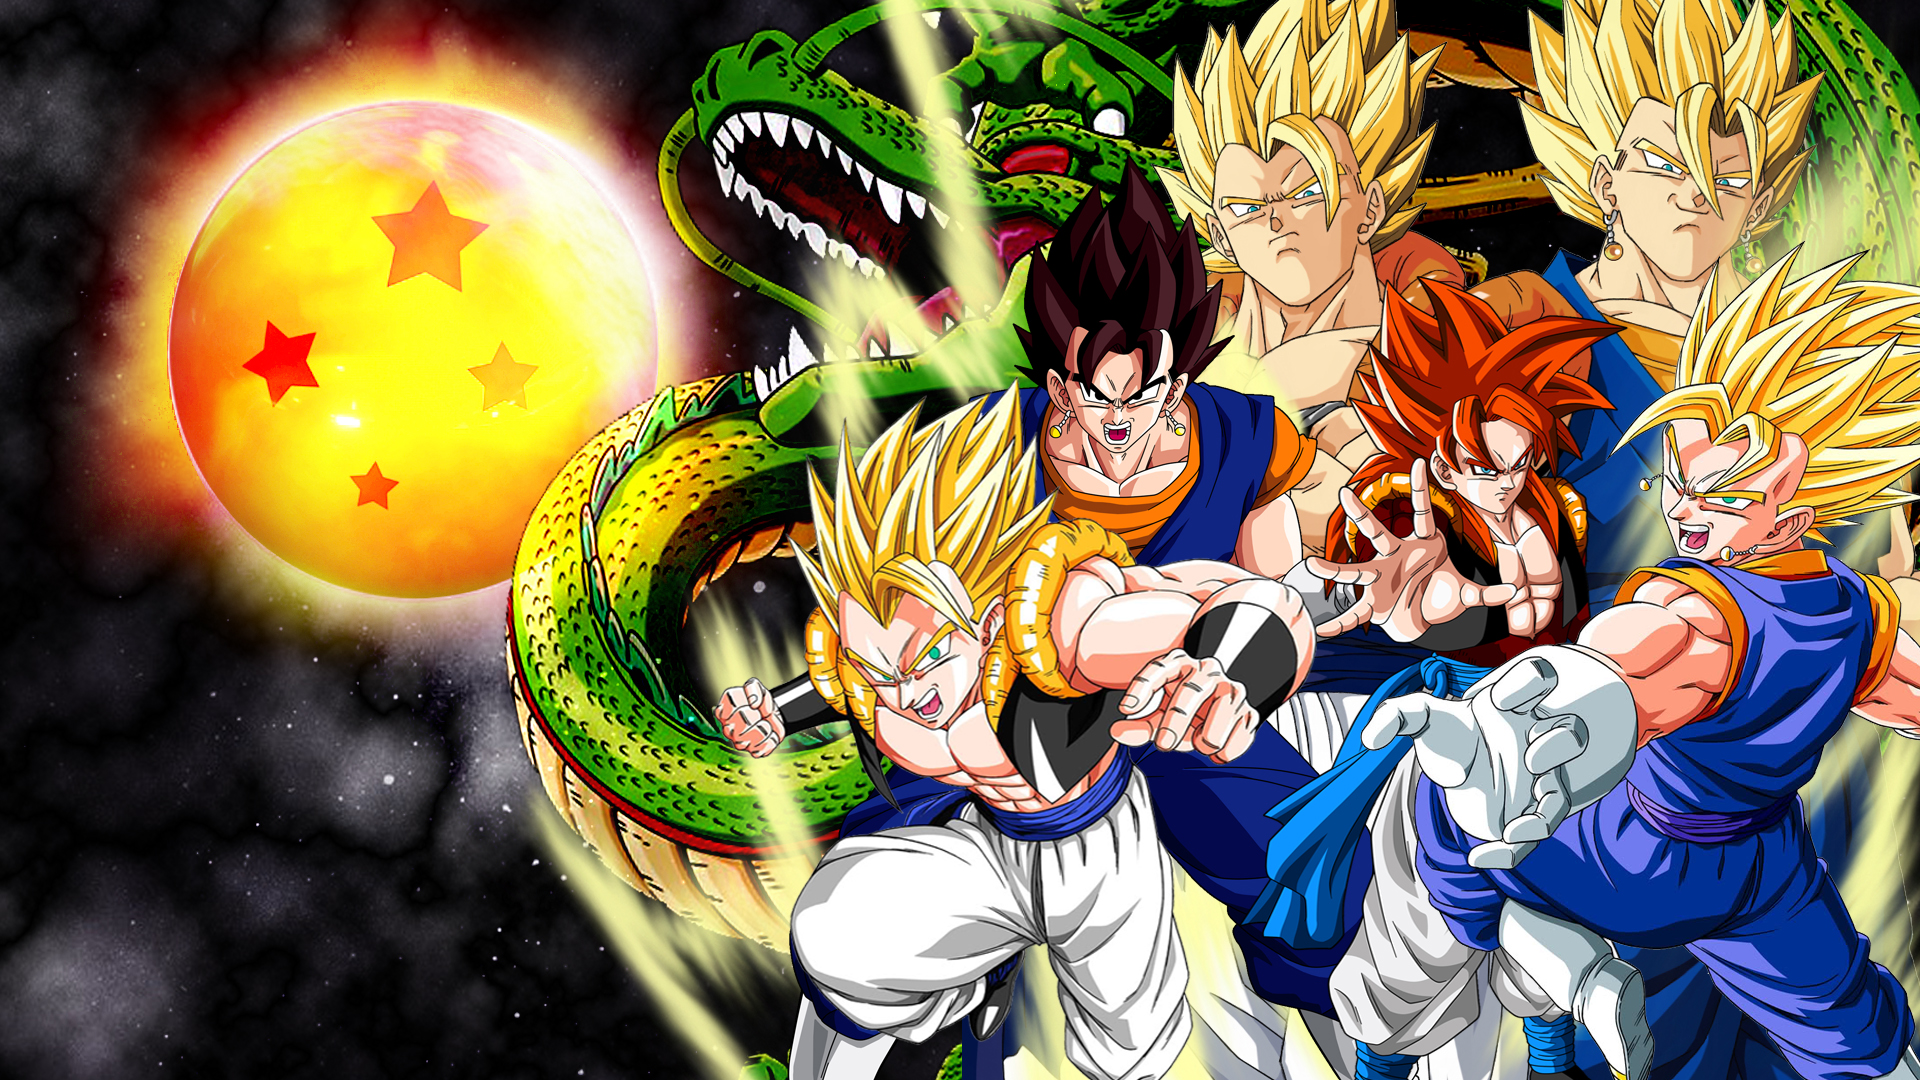 Wallpaper De Dragon Ball Z